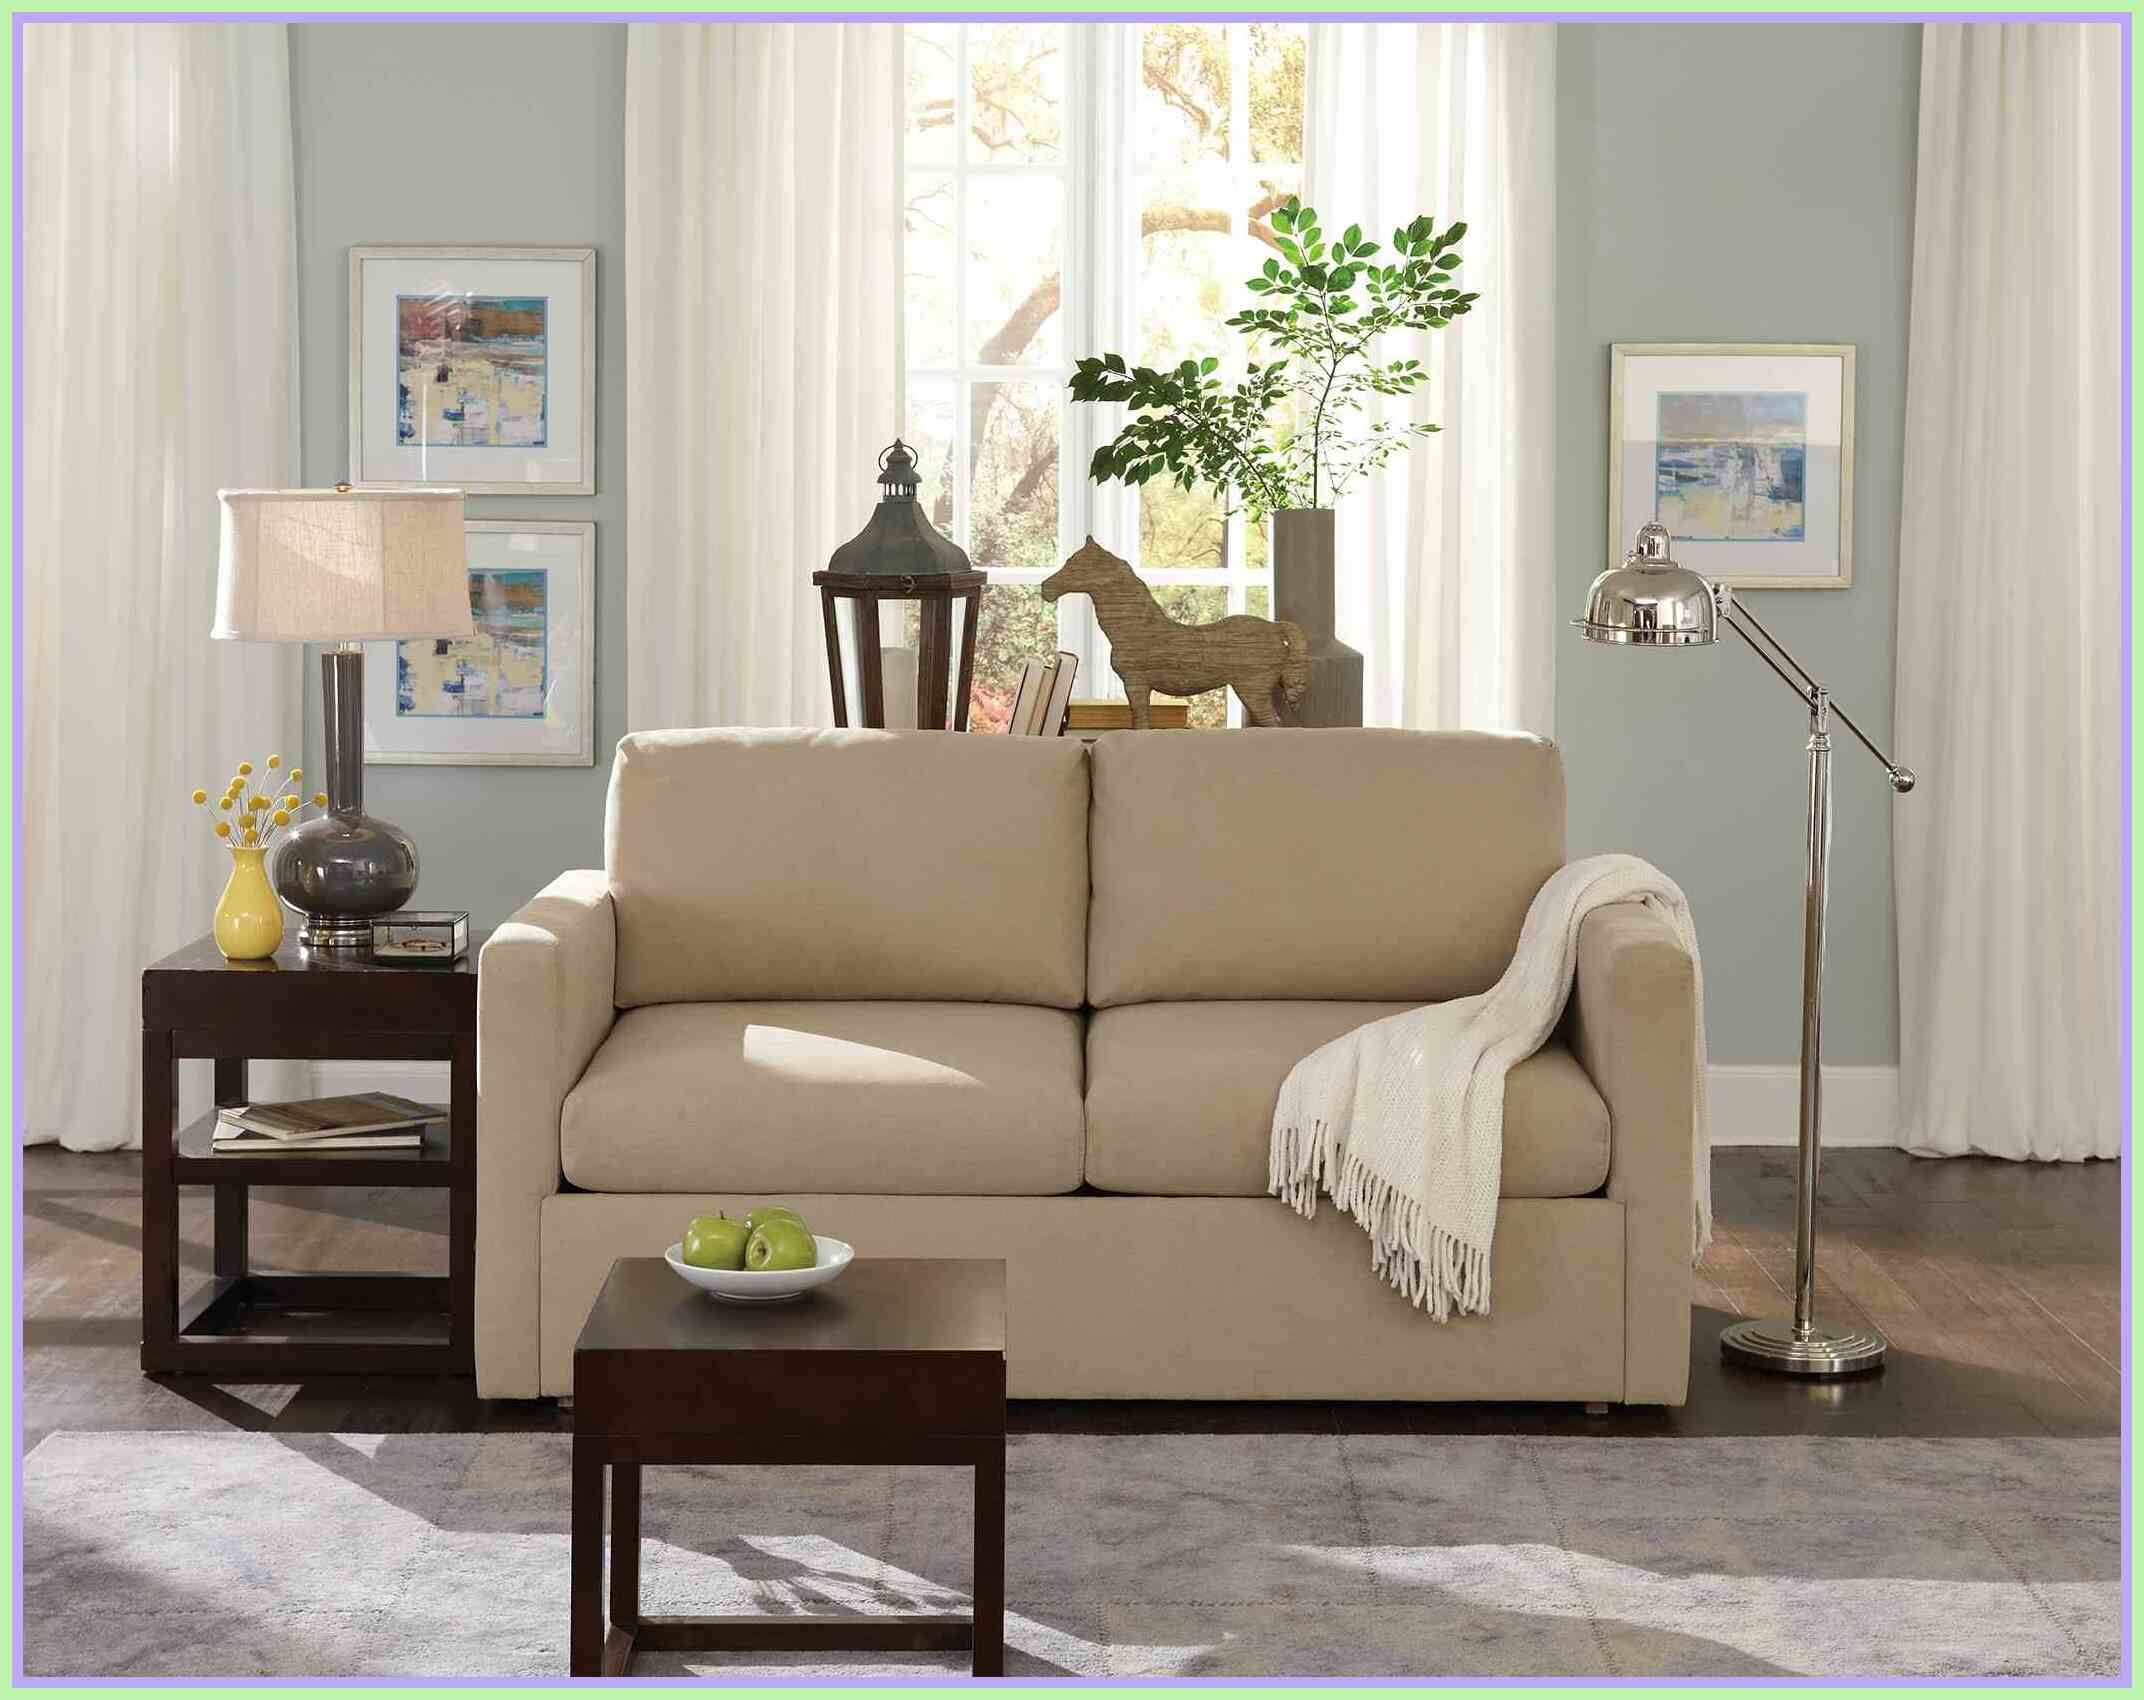 76 reference of furniture for small spaces sleeper couch